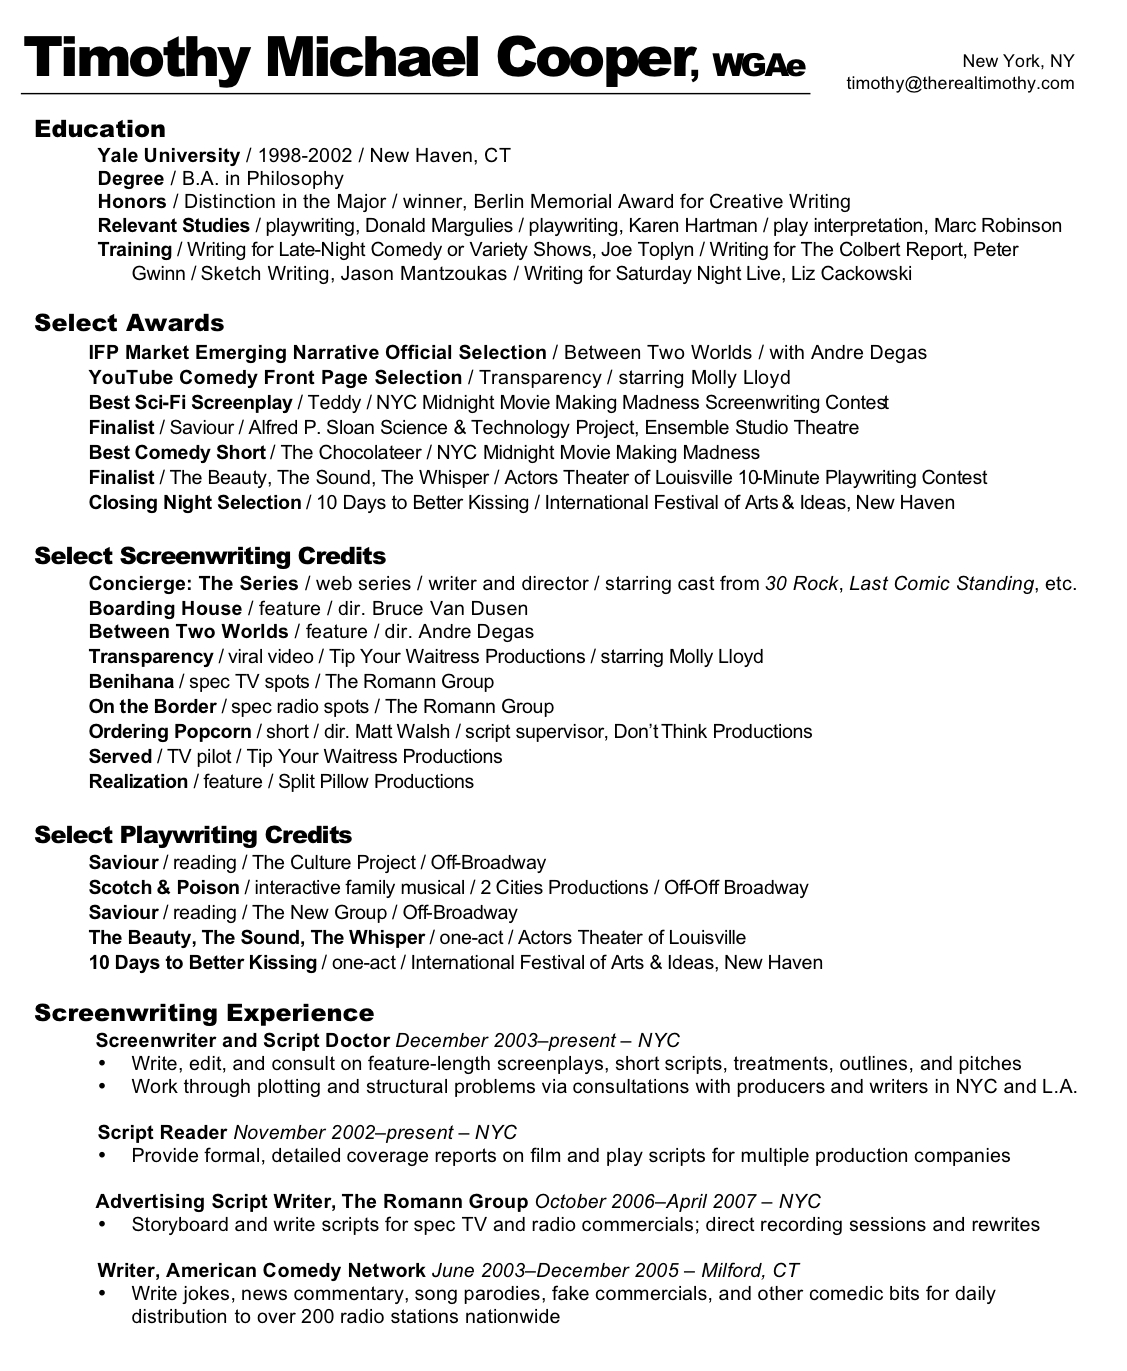 resume examples education section